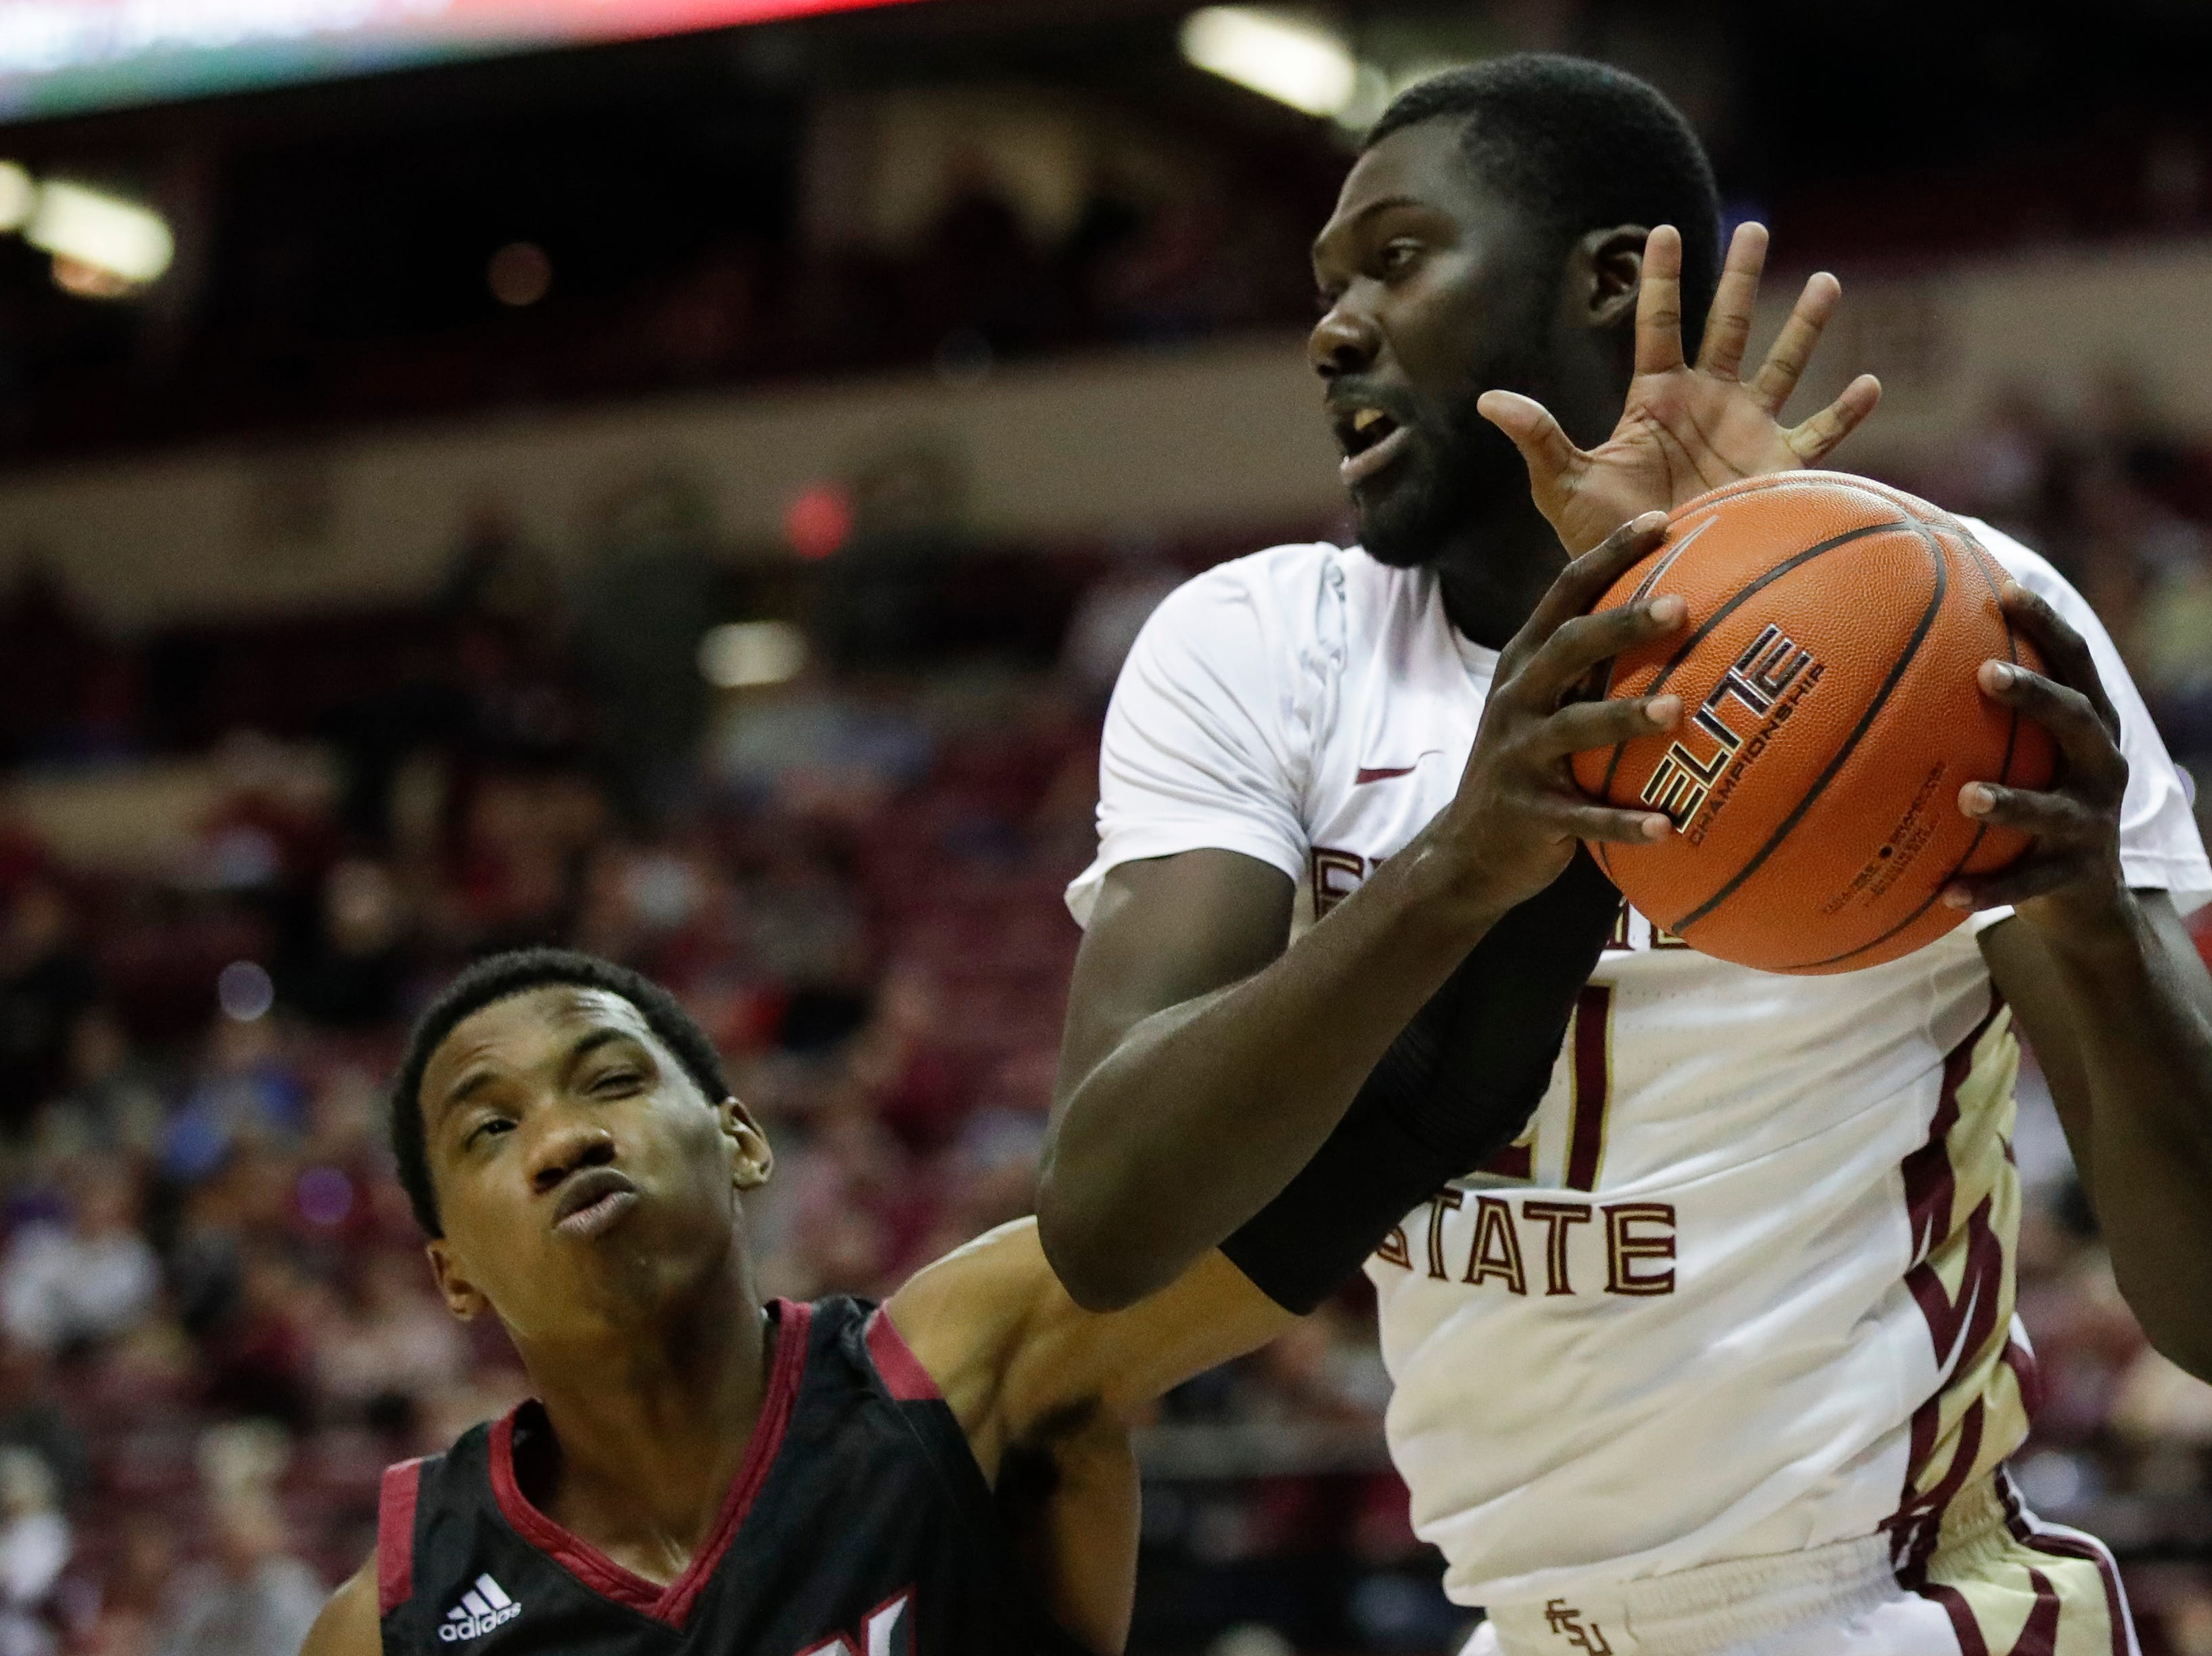 Florida State Seminoles center Christ Koumadje (21) tries to keep the rebounded ball during a game between FSU and Troy University at Donald L. Tucker Civic Center Monday, Dec. 3, 2018.